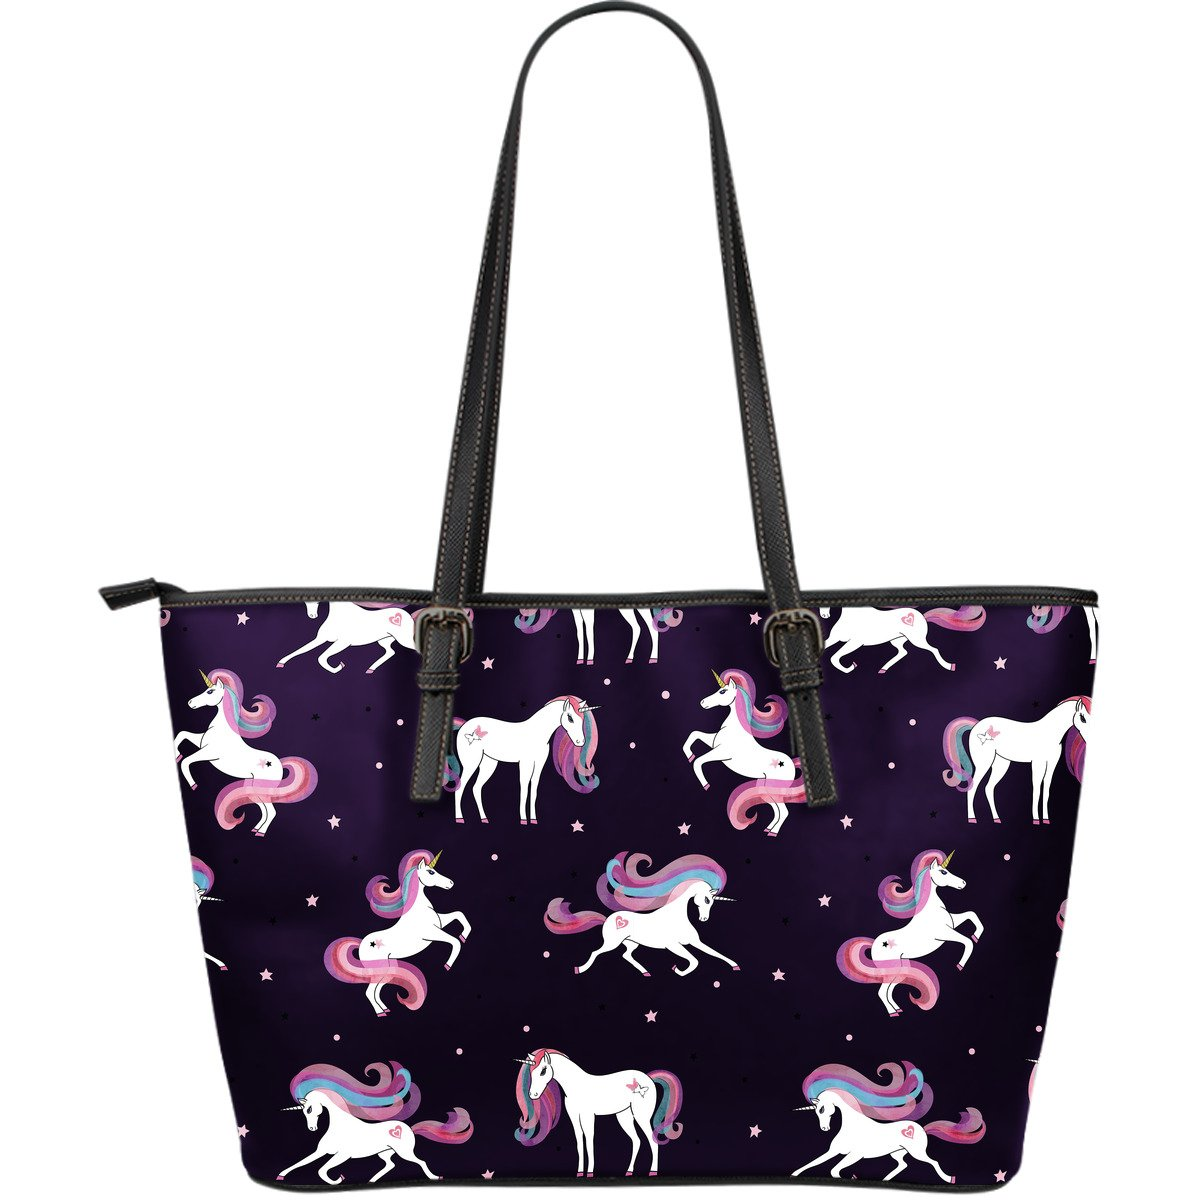 Night Girly Unicorn Pattern Print Leather Tote Bag GearFrost